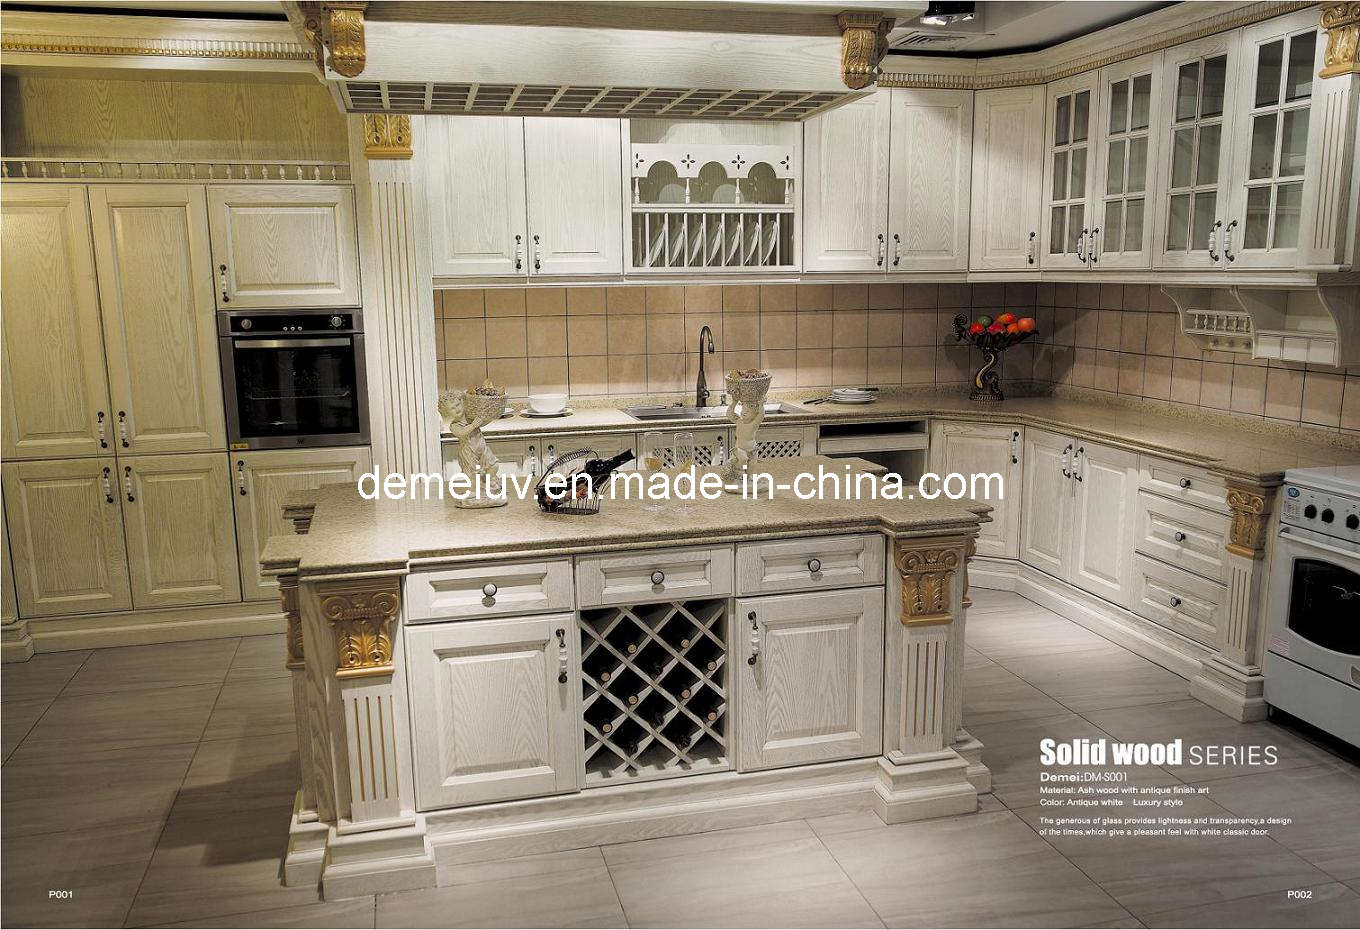 wooden kitchen tables and chairs wood kitchen chairs Wooden kitchen tables and chairs Photo 5